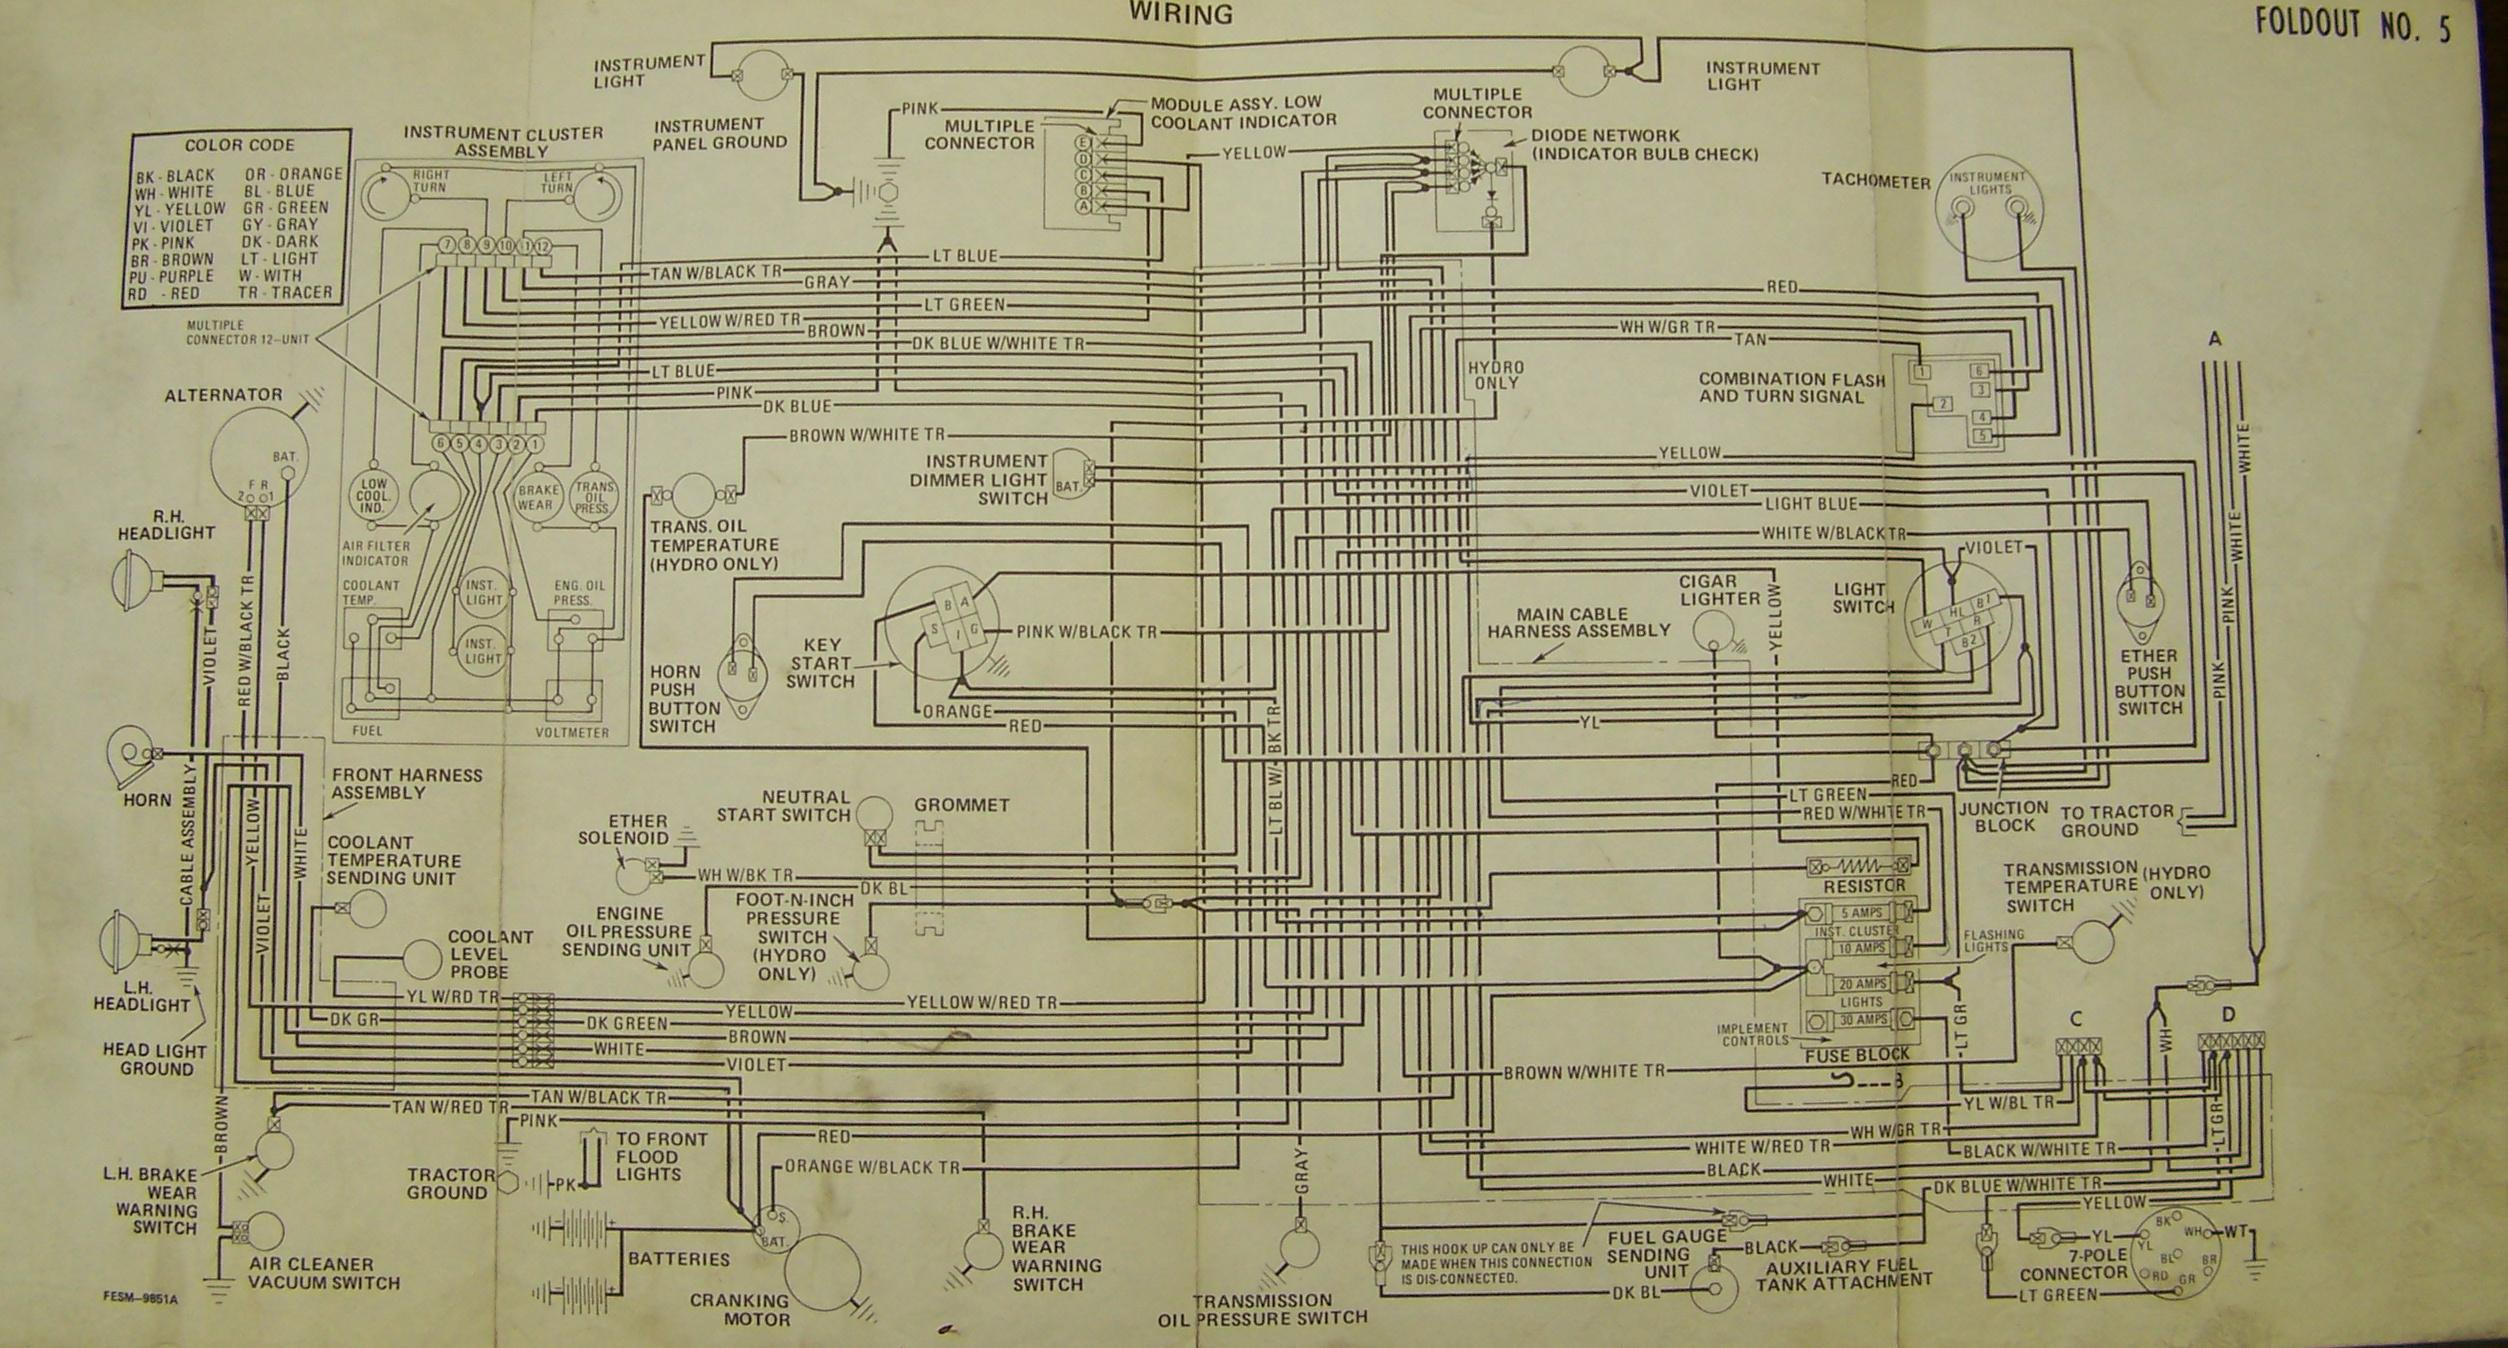 Carter & Gruenewald Co. Inc. - IH-FARMALL Tractor Electrical Wiring on farmall magneto diagram, farmall 400 wiring diagram, fordson dexta 12 volt wiring diagram, farmall 450 wiring diagram, kitchen stove wiring diagram, farmall h hydraulics diagram, farmall h parts diagram, 12v wiring diagram, international 244 tractor diagram, bobcat wiring diagram, farmall 706 wiring-diagram, farmall super a hydraulic system diagram, case wiring diagram, farmall m distributor diagram, farmall h transmission diagram, farmall h carburetor diagram, 504 farmall gas wiring diagram, farmall m wiring diagram, farmall h electrical diagram, farmall tractors history,